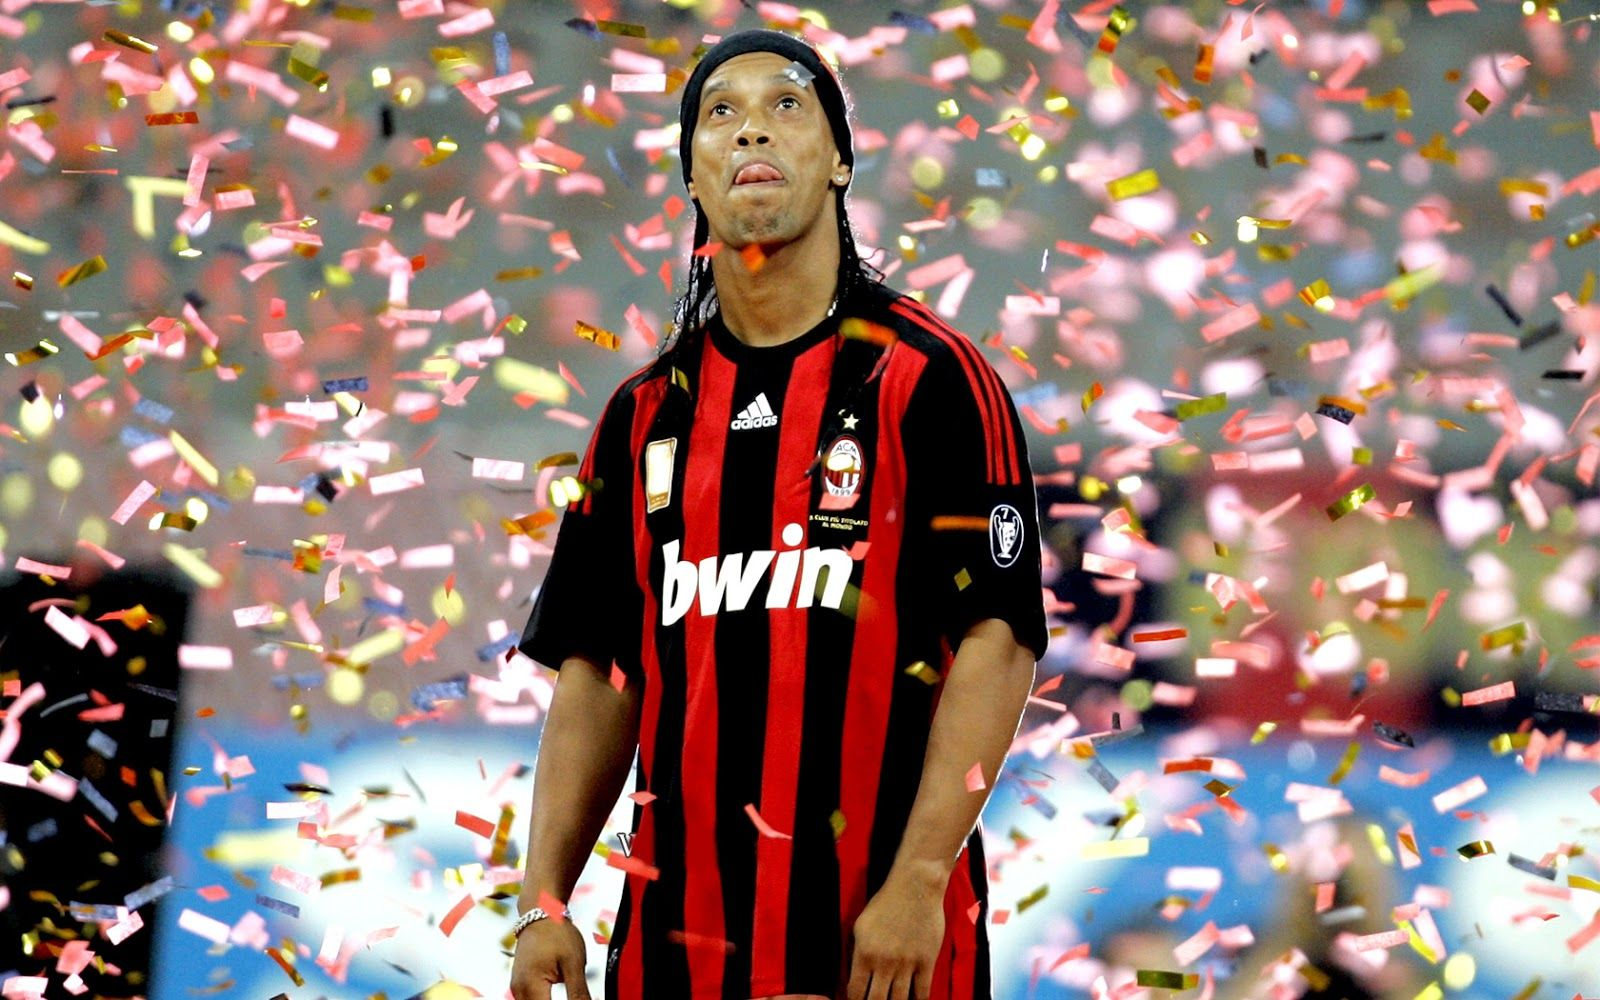 ronaldinho backgrounds